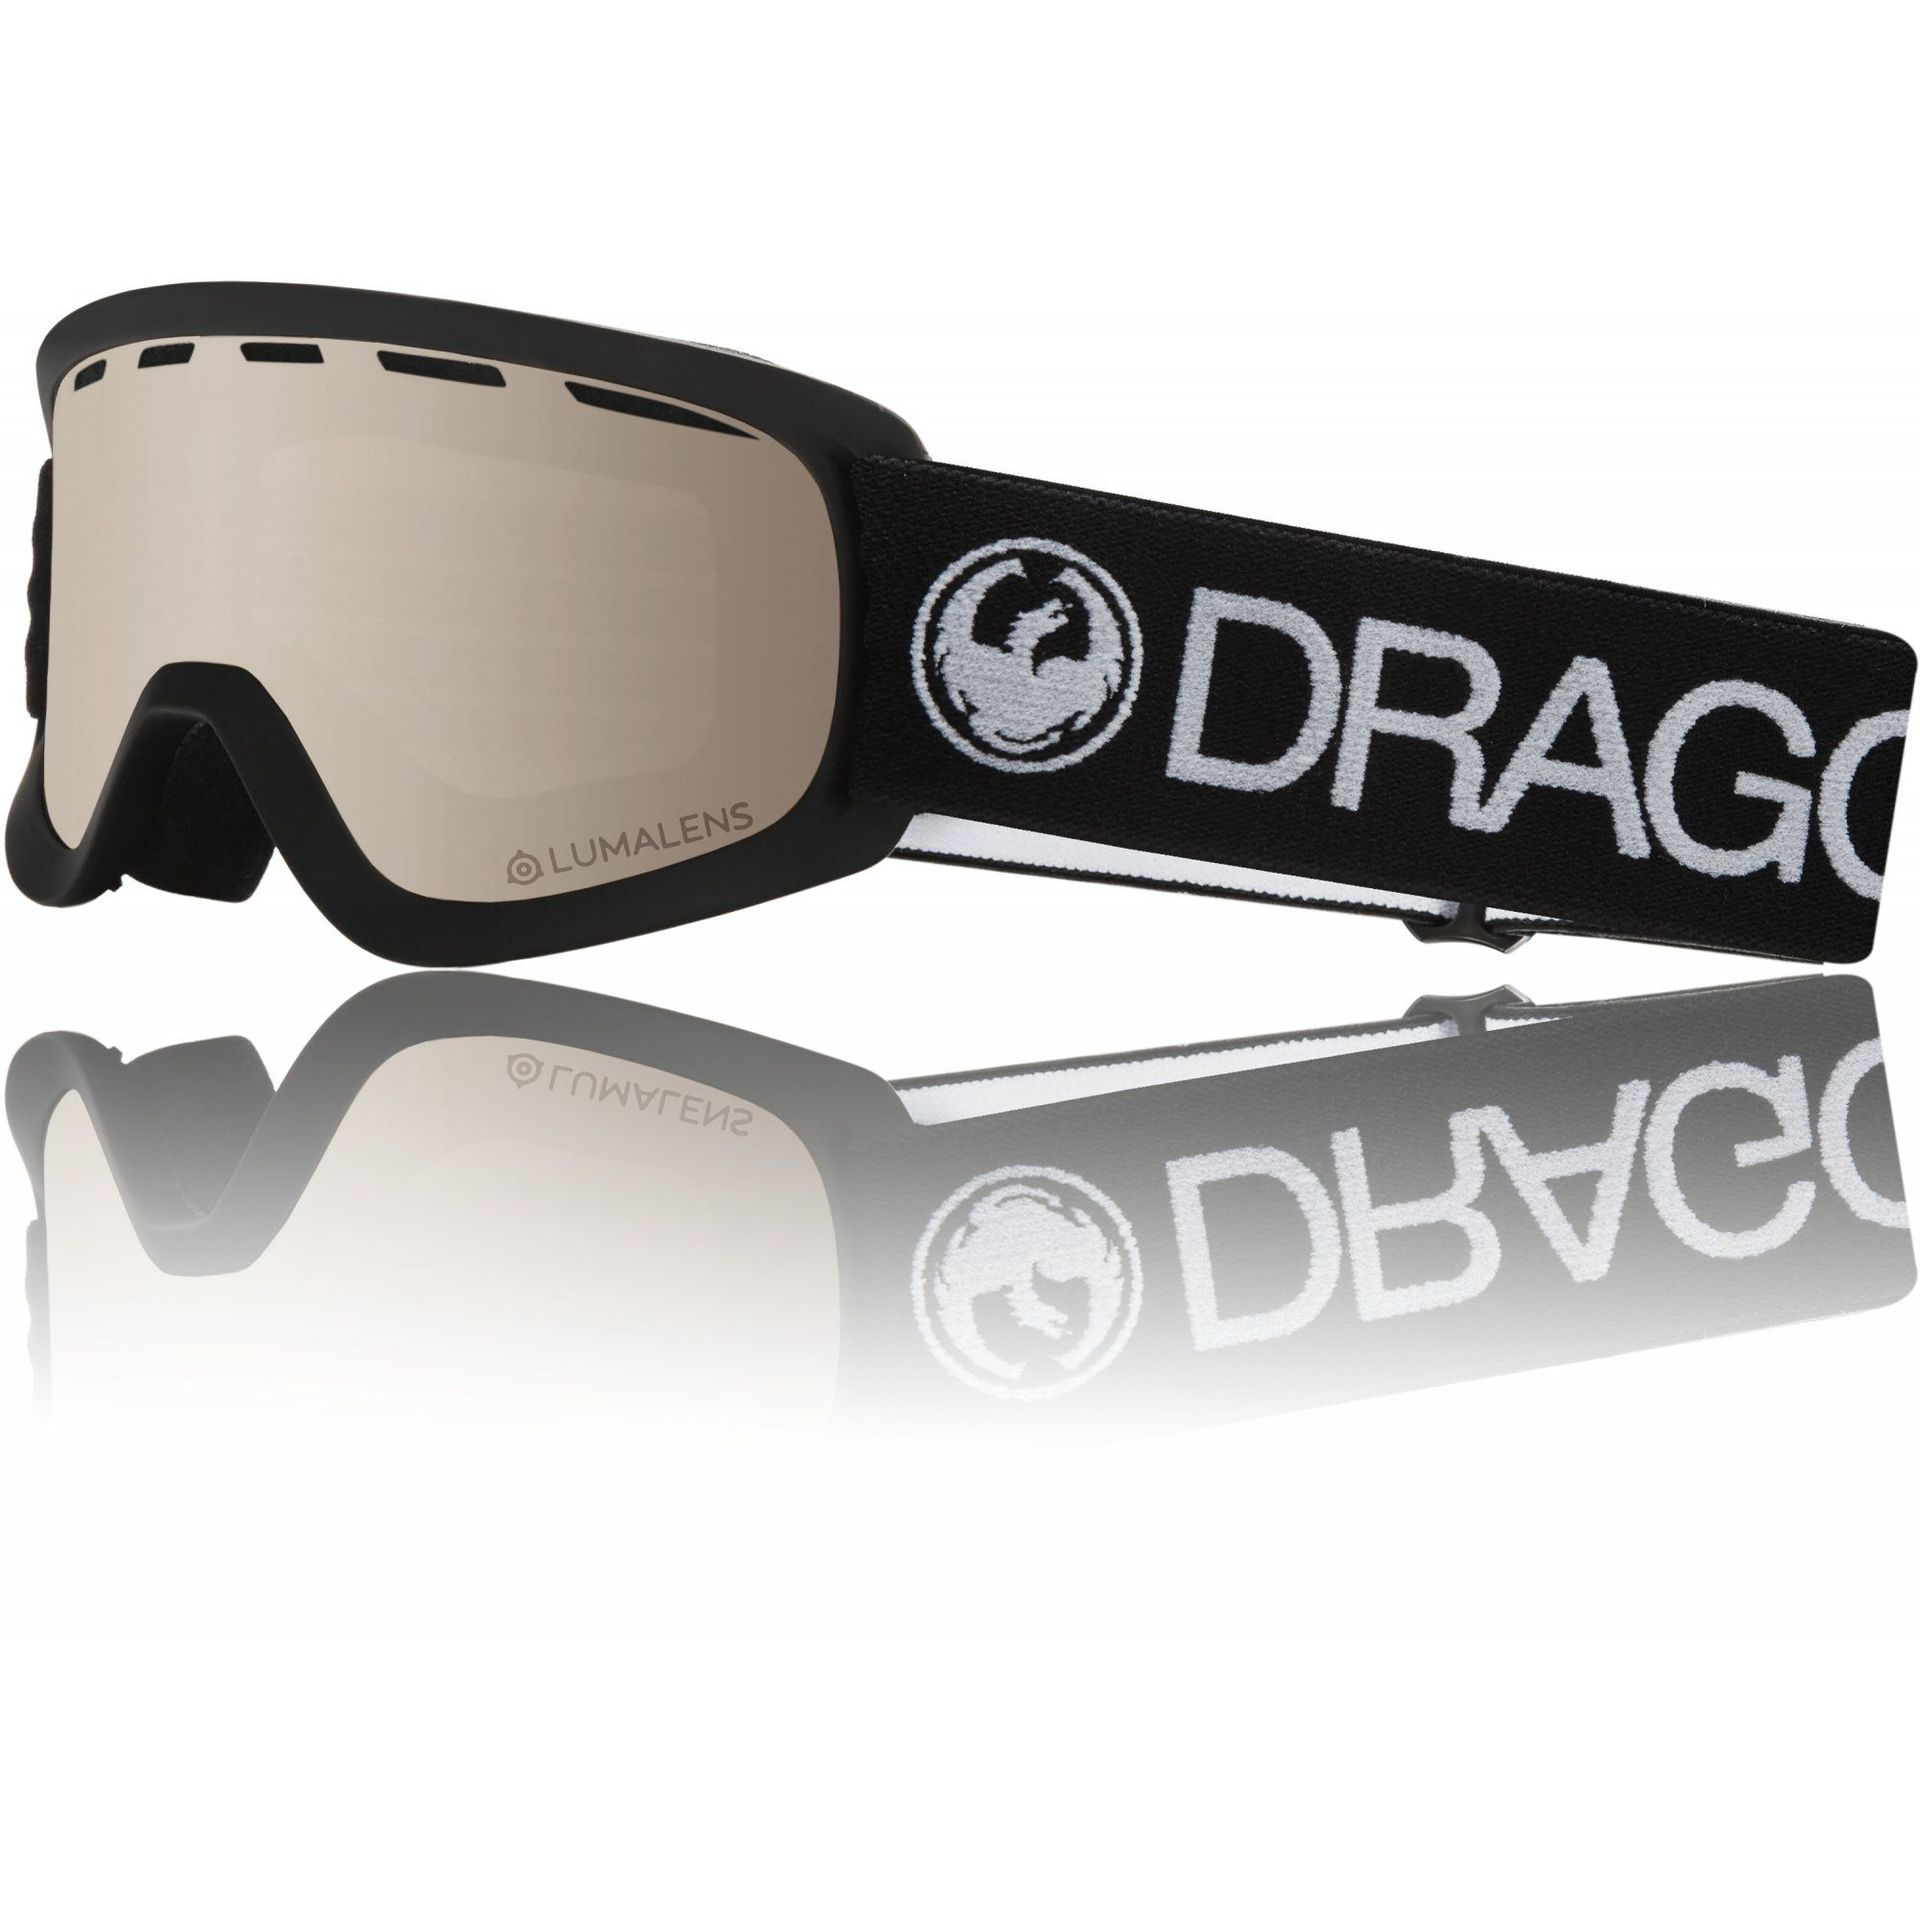 GOGLE DRAGON LIL D BLACK|SILVER ION